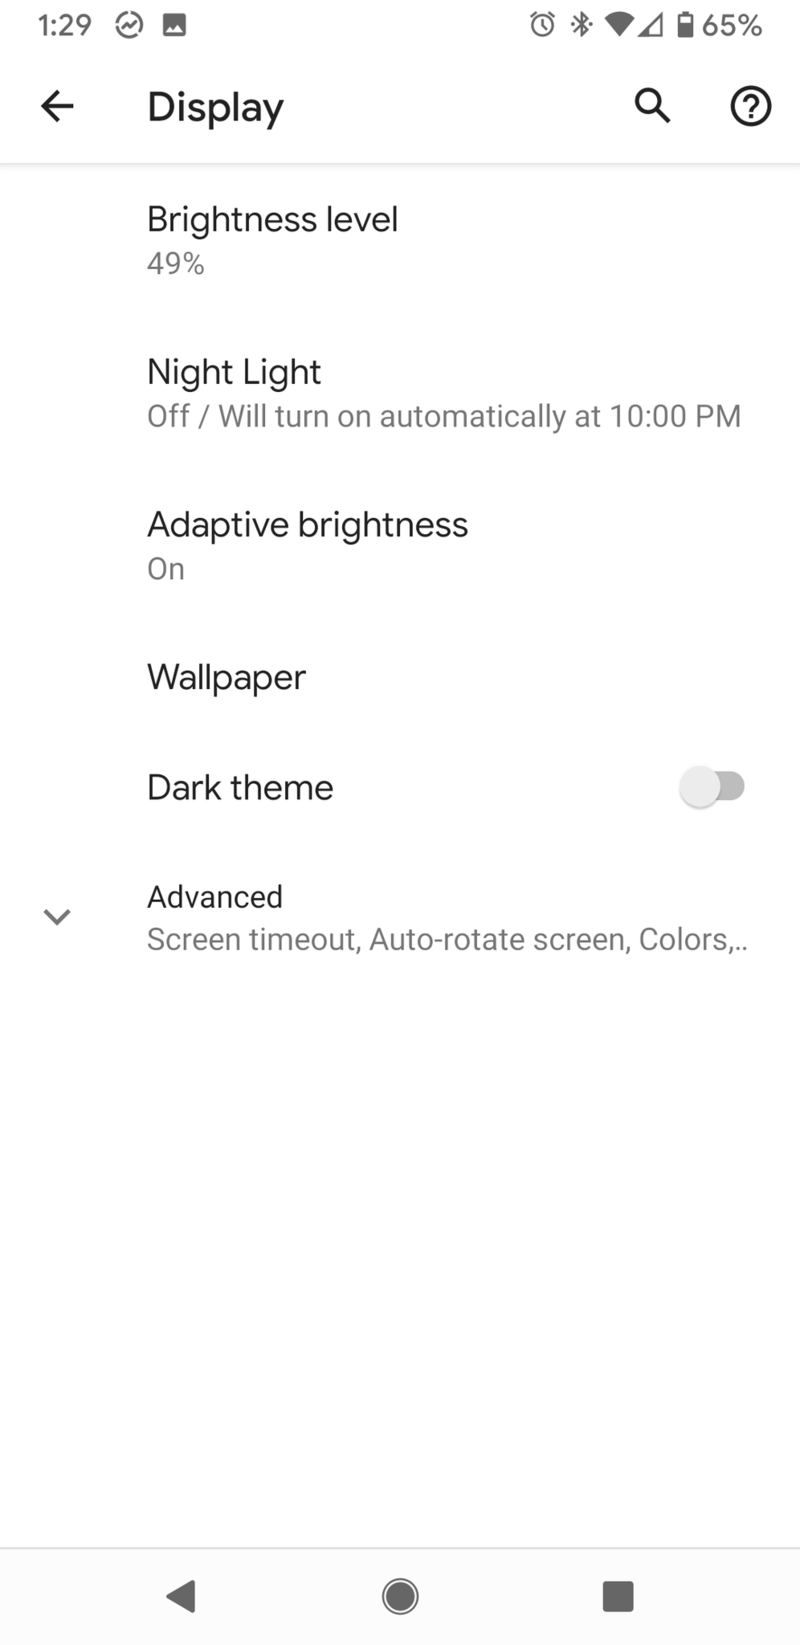 android-10-dark-theme-settings-3.png?ito